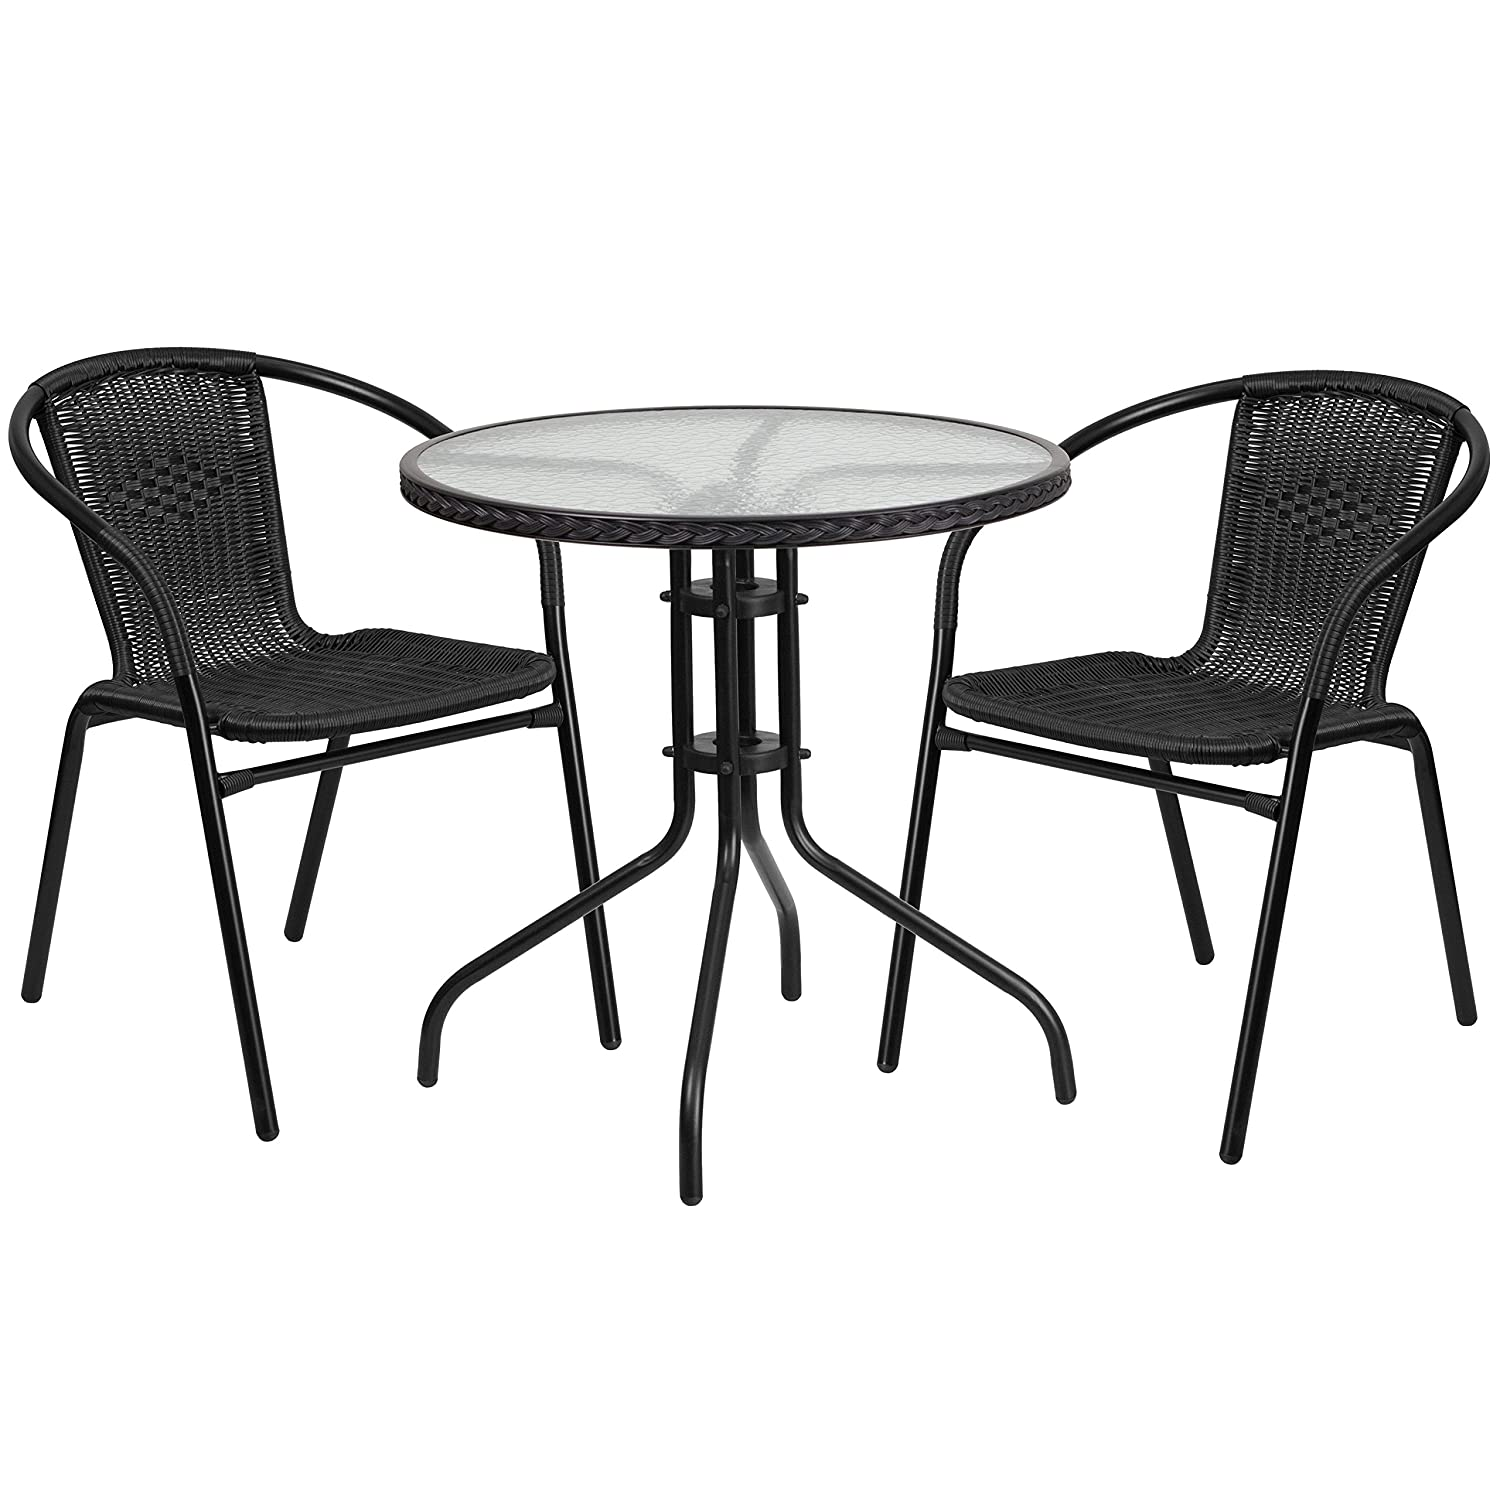 "Flash Furniture TLH-087RD-037BK2-GG Tlh-087Rd-037Bk2-Gg Round Glass Metal Table WithRattan Edging And 2Rattan Stack Chairs, 28"", Black"